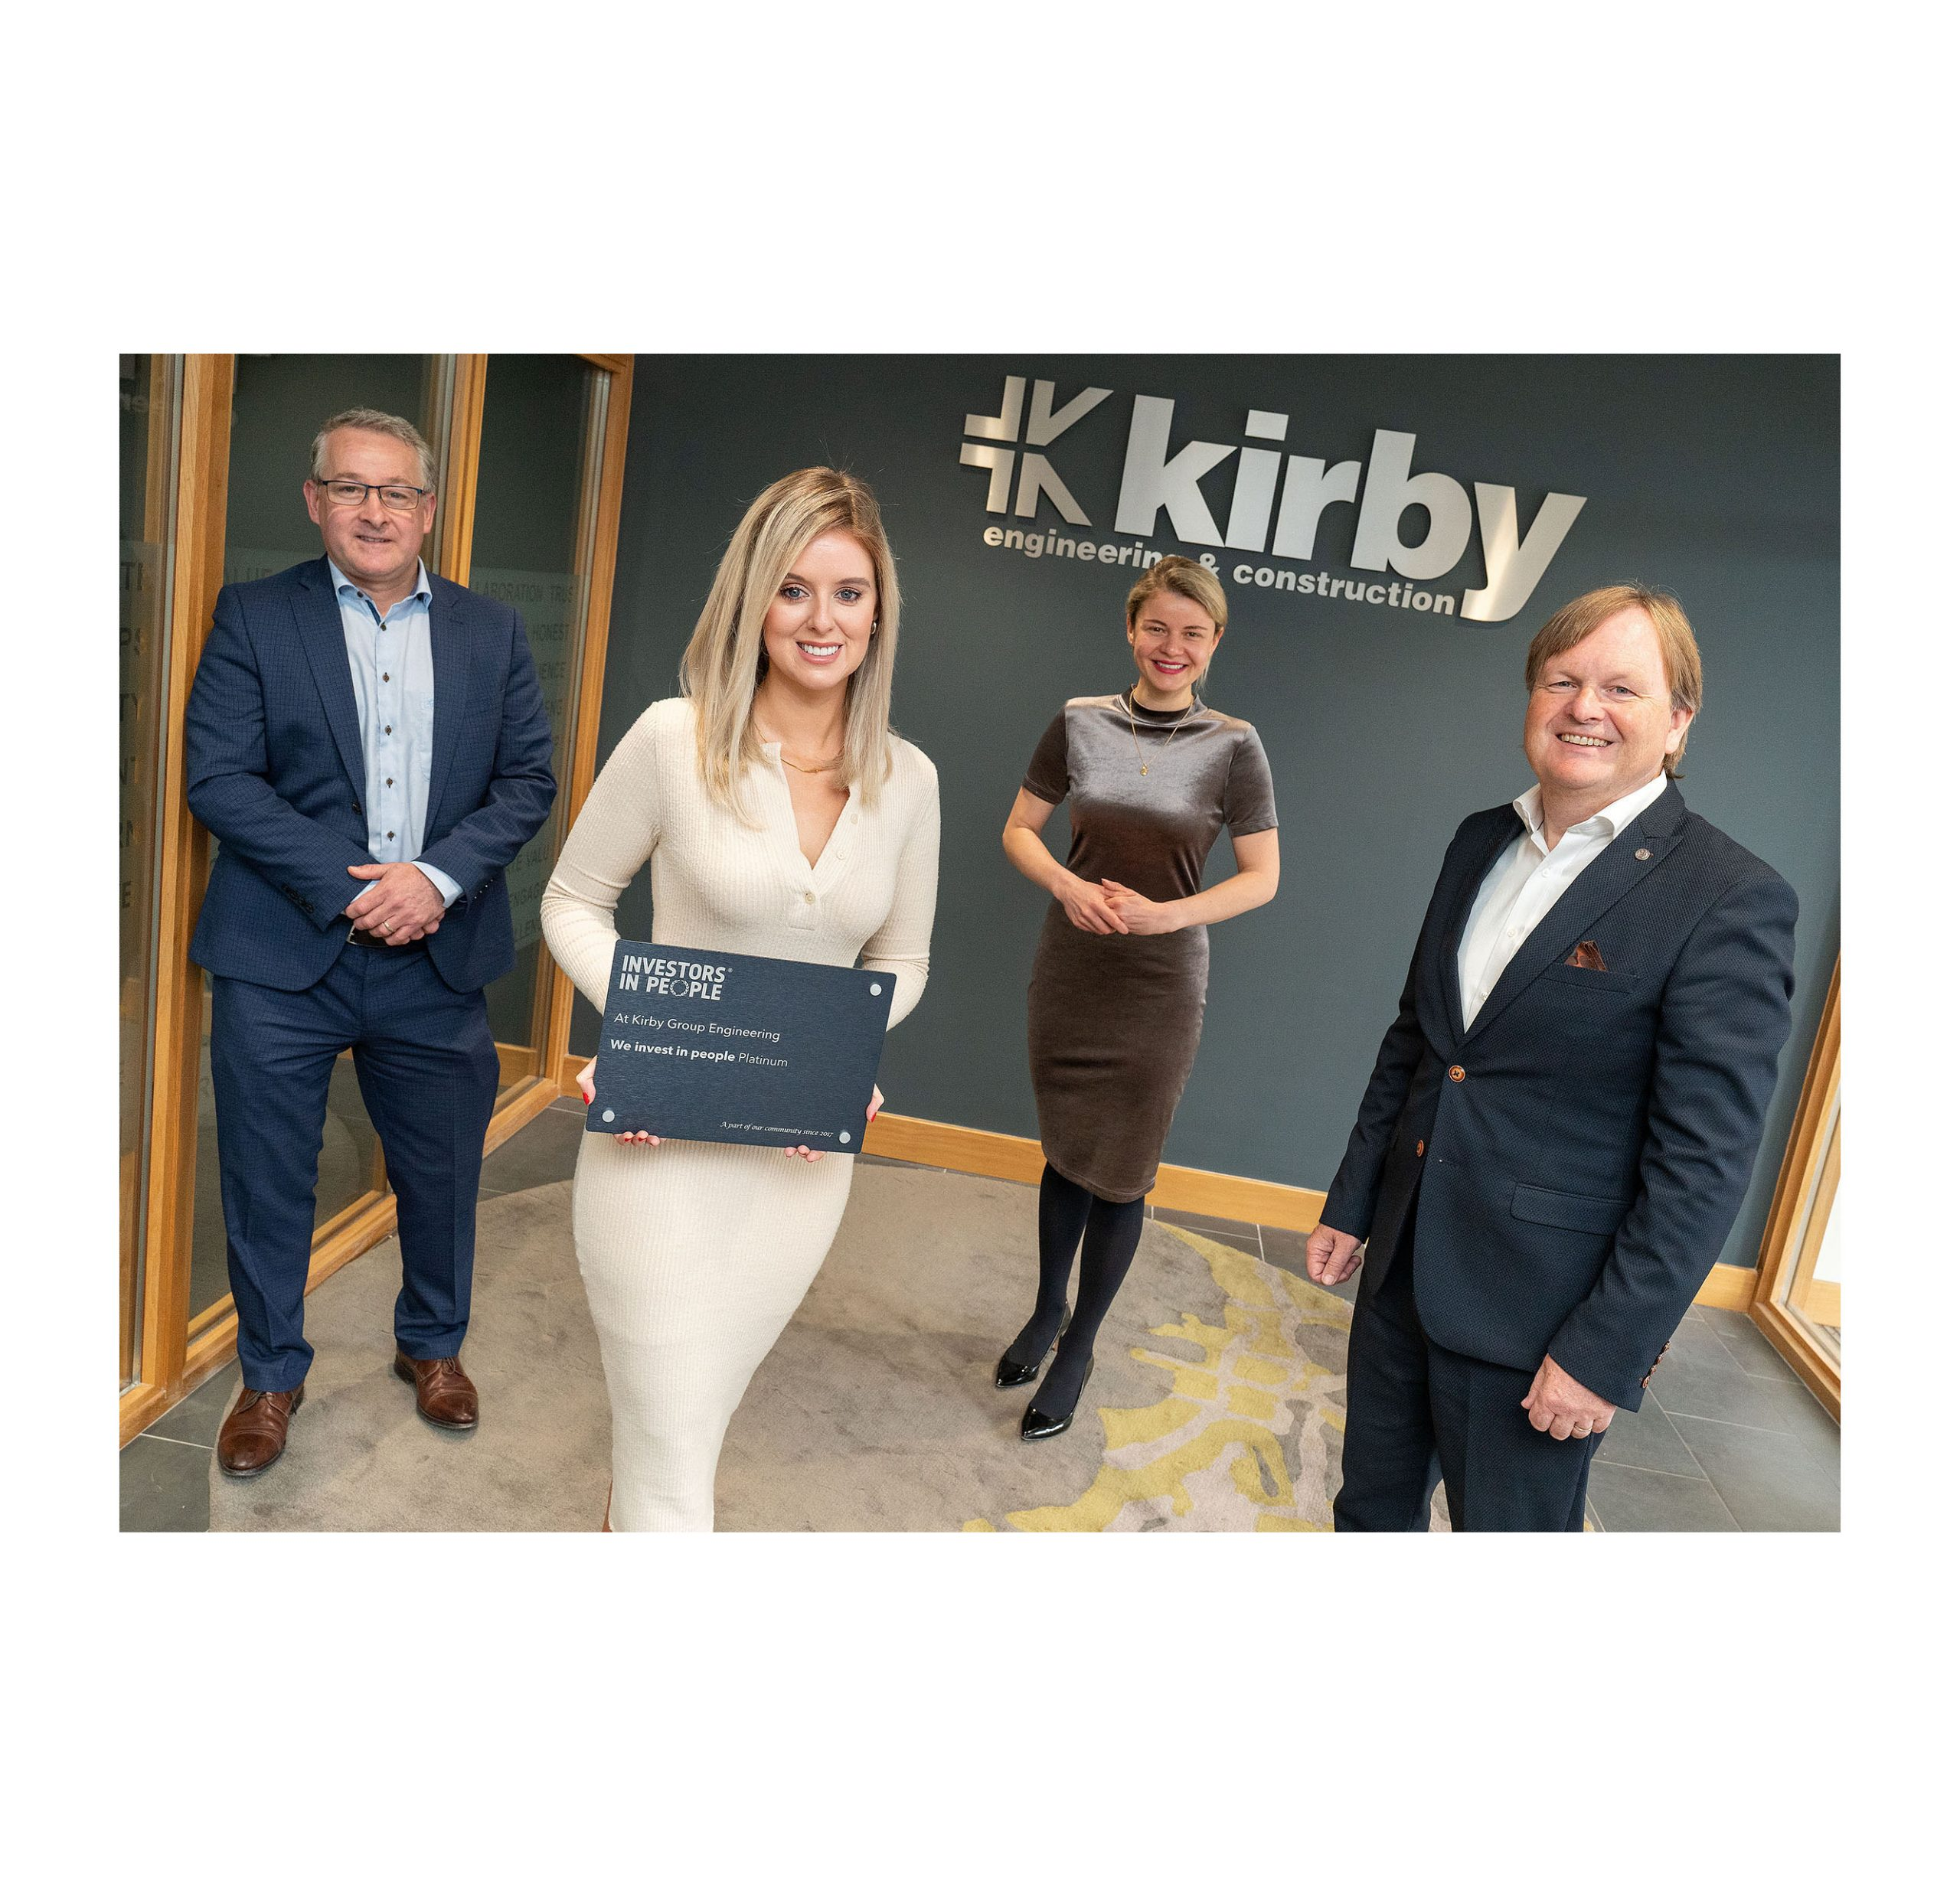 ( L - R ) Mark Flanagan, Group Managing Director,  Michelle Powell, HR Business Partner, Giedre Visockaite, Associate Director – Strategy and Marketing and Fergus Barry, Group Head of Human Resources. Kirby Group Engineering has made the final shortlist for 'Employer of the Year' in The Investors in People Awards 2021.